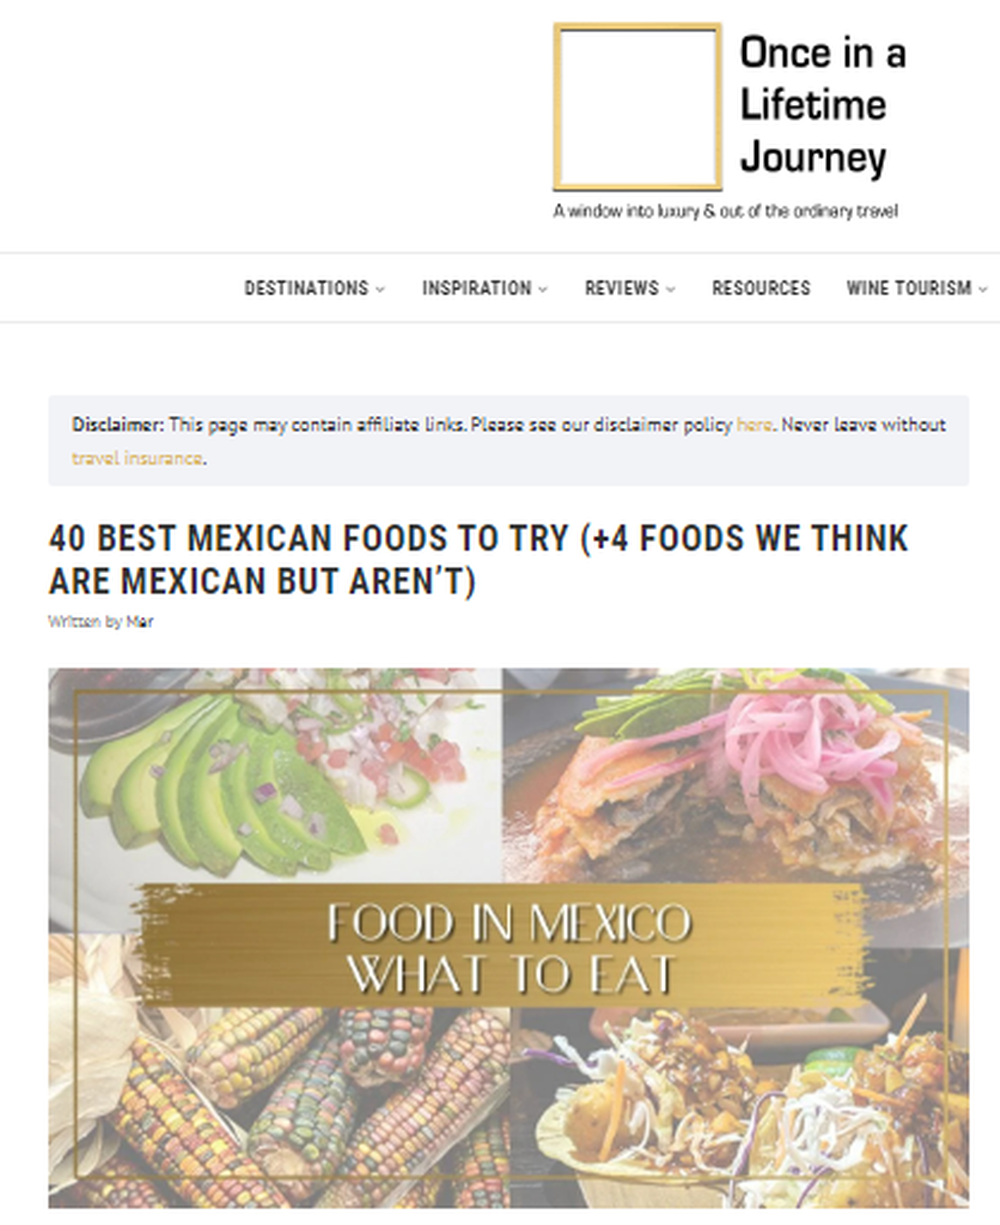 40_Best_Mexican_foods_to_try_4_foods_we_think_are_Mexican_but_are_not_.png